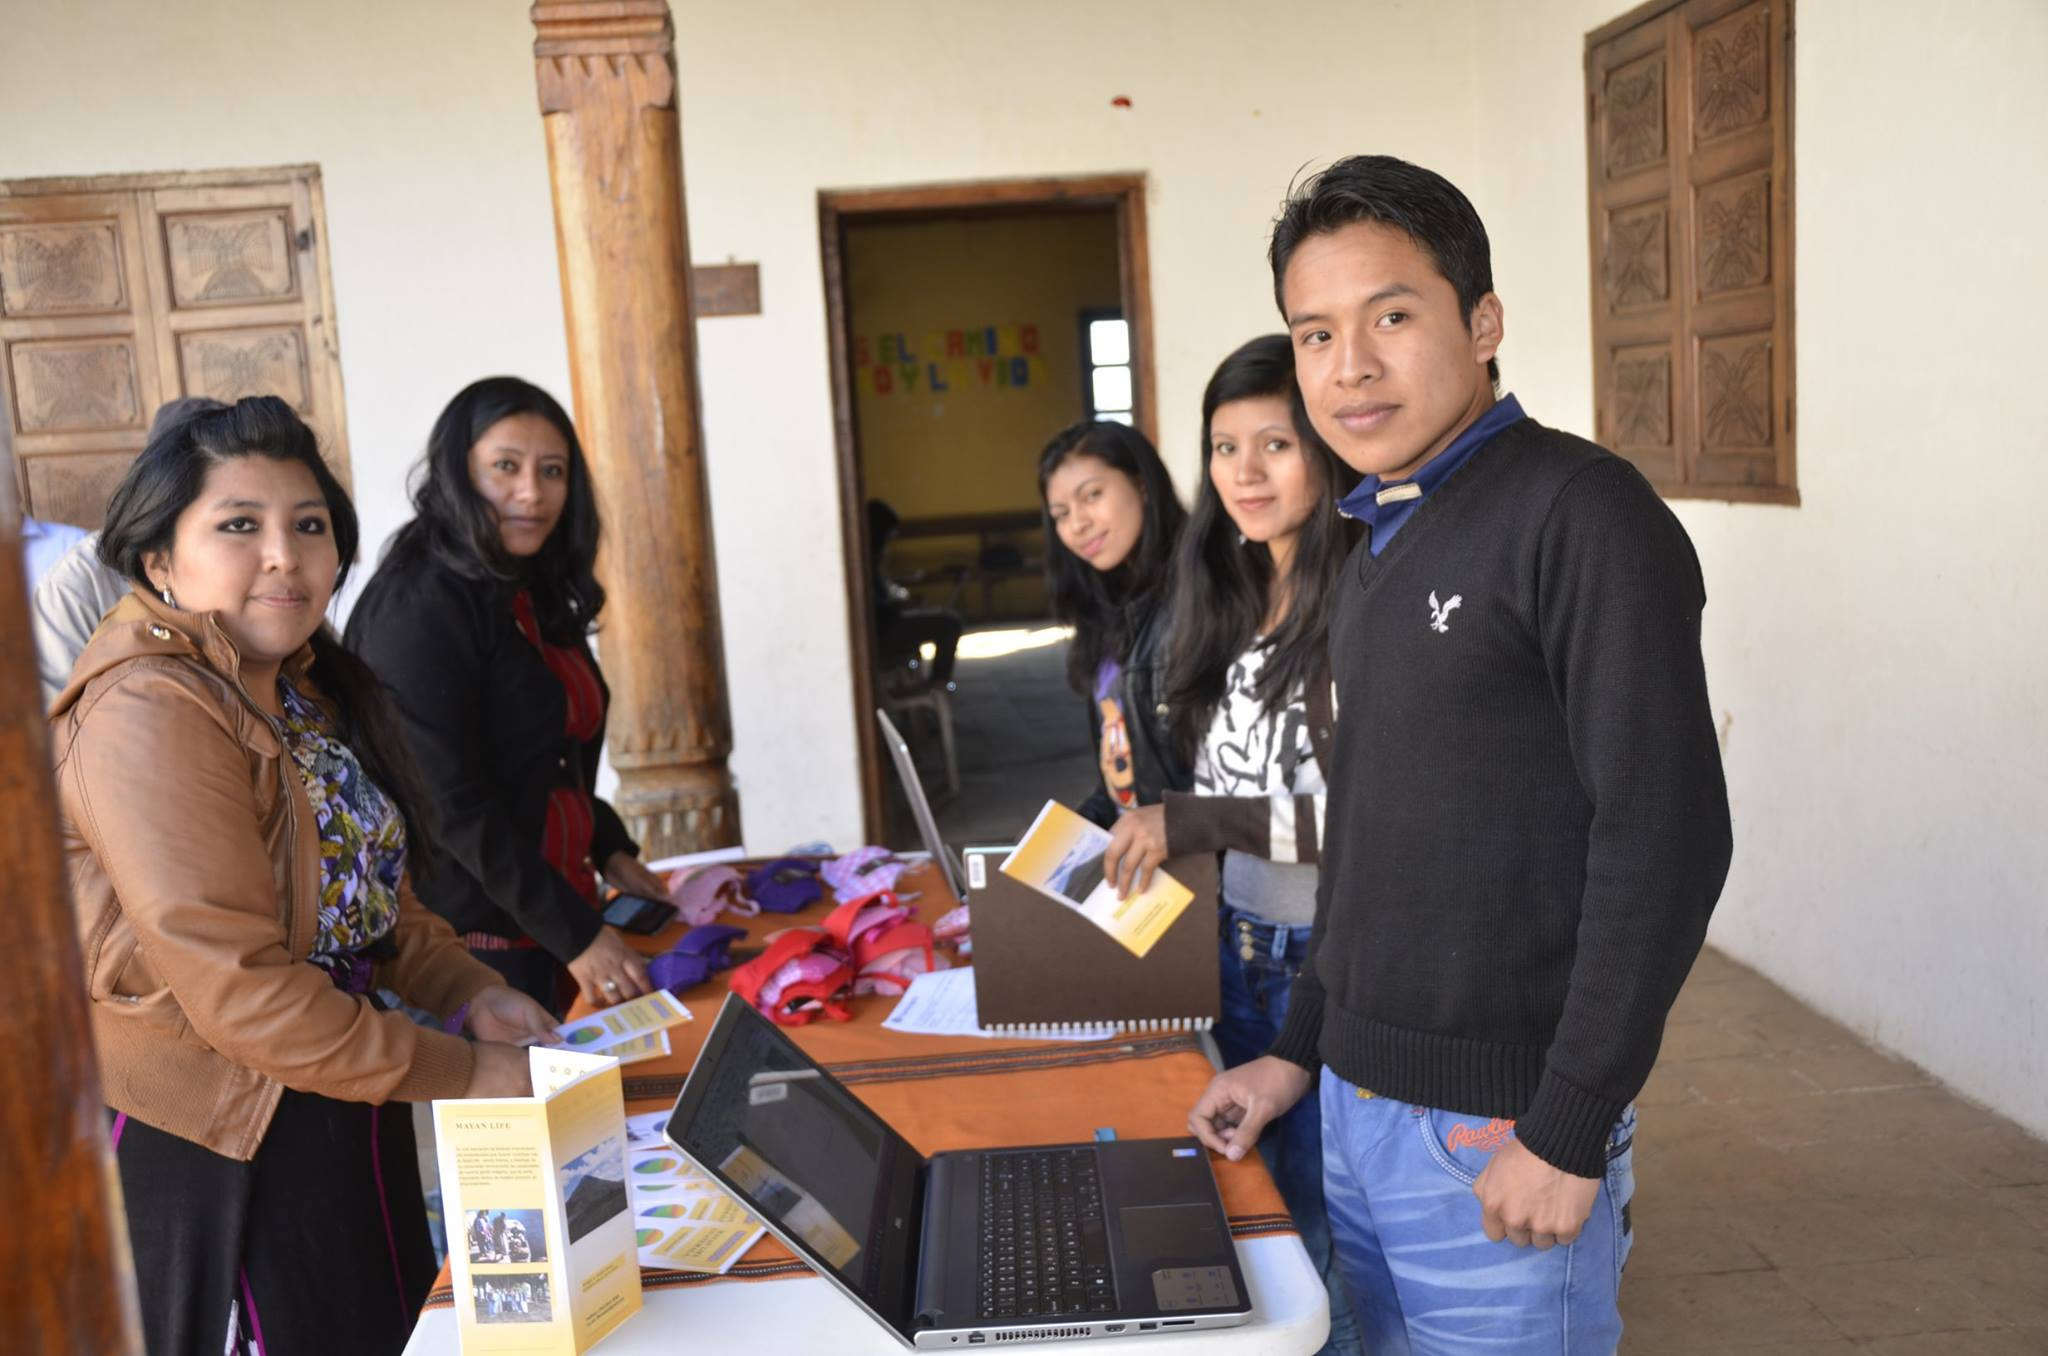 Lola with other young entrepreneurs presenting her business idea in Chajul Quiche, Guatemala.